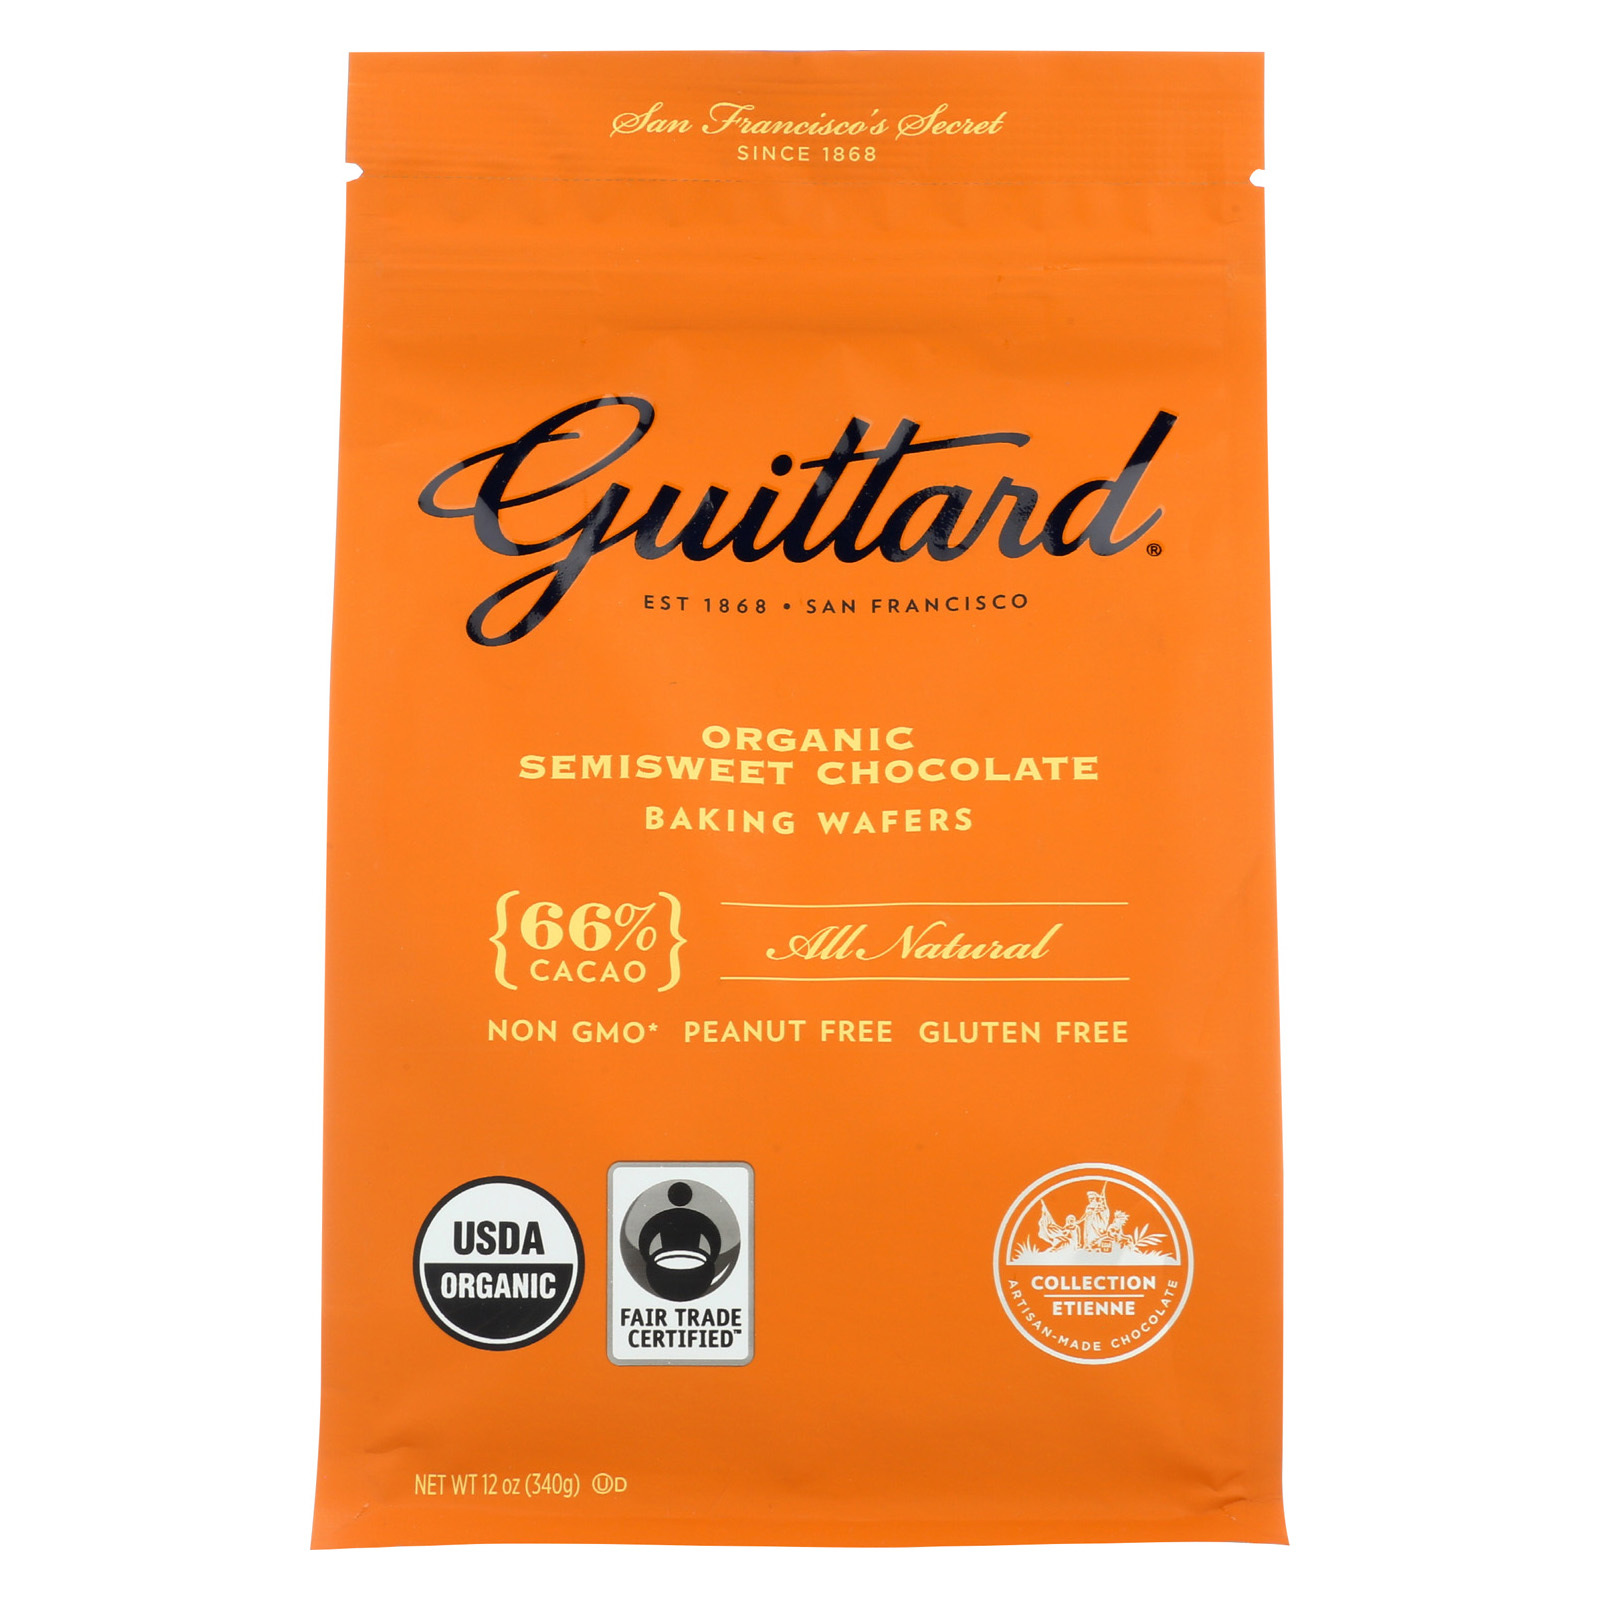 Guittard Chocolate Baking Wafers - Organic - 66% Semisweet - Case of 8 - 12 oz